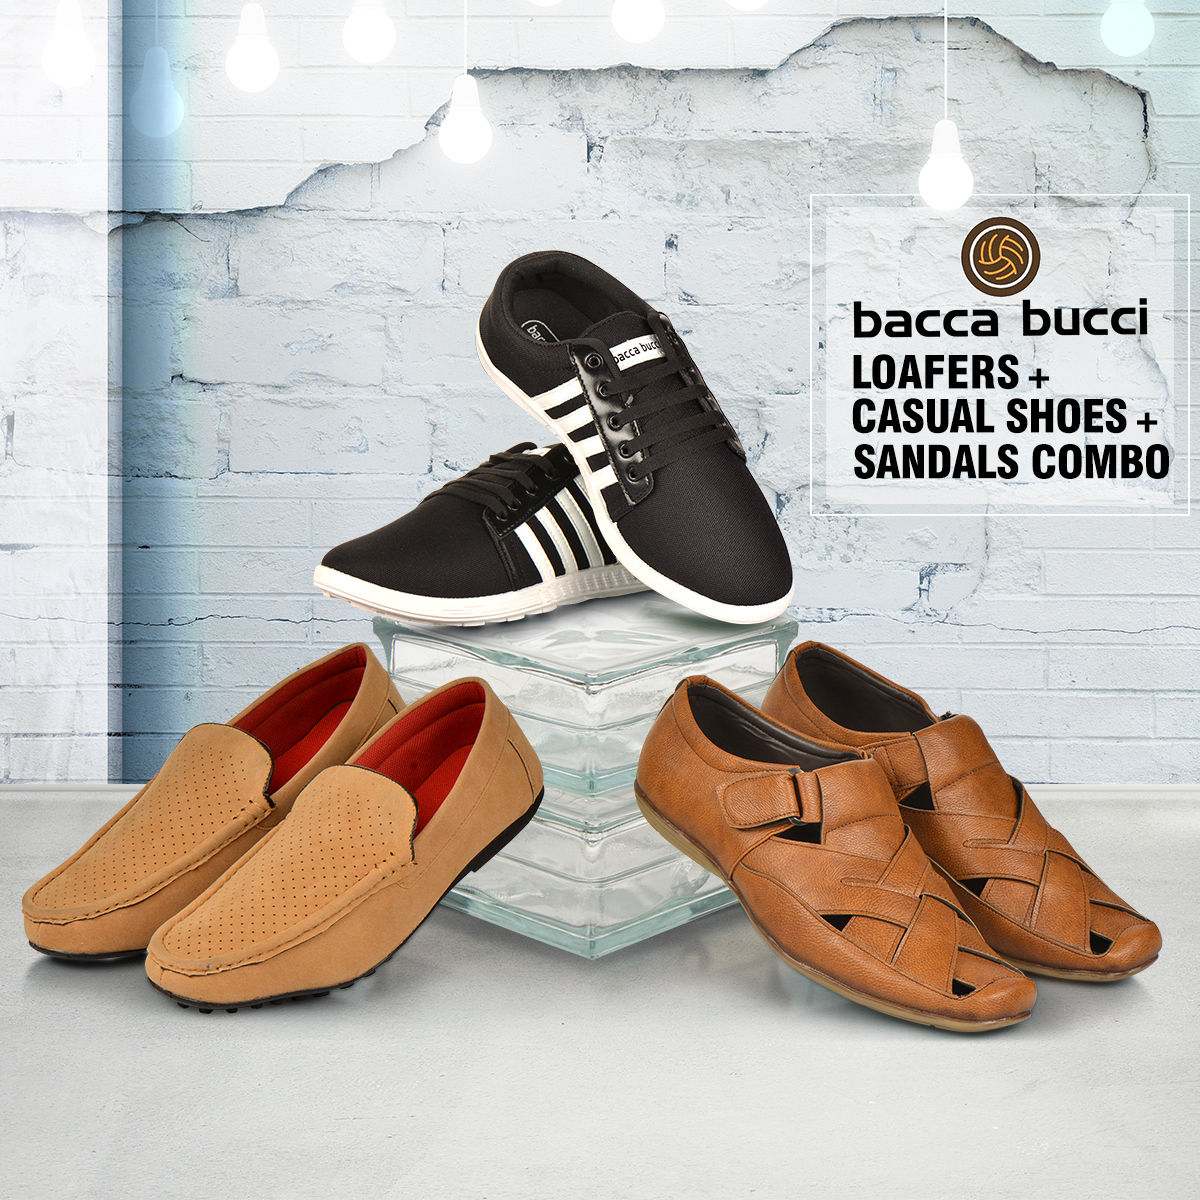 Buy Bacca Bucci Black Moccasins for Men Online United States Best Prices Reviews BA978SH60QTRINDFAS